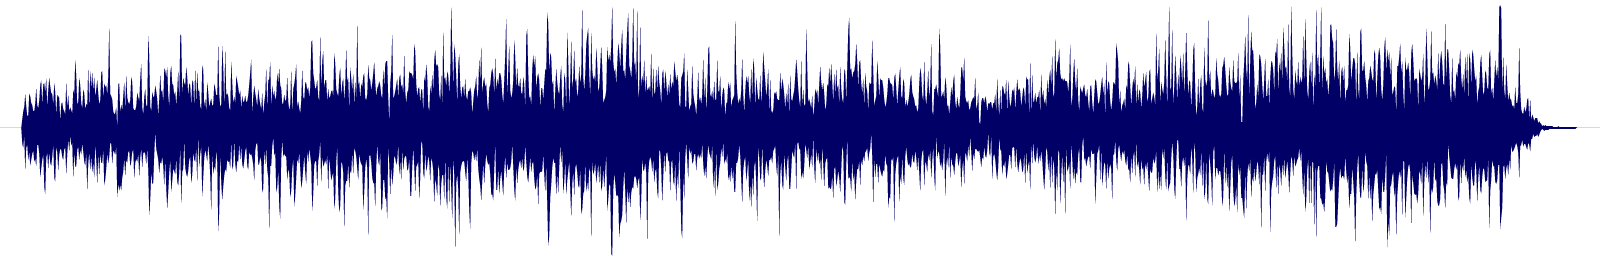 waveform of track #132149